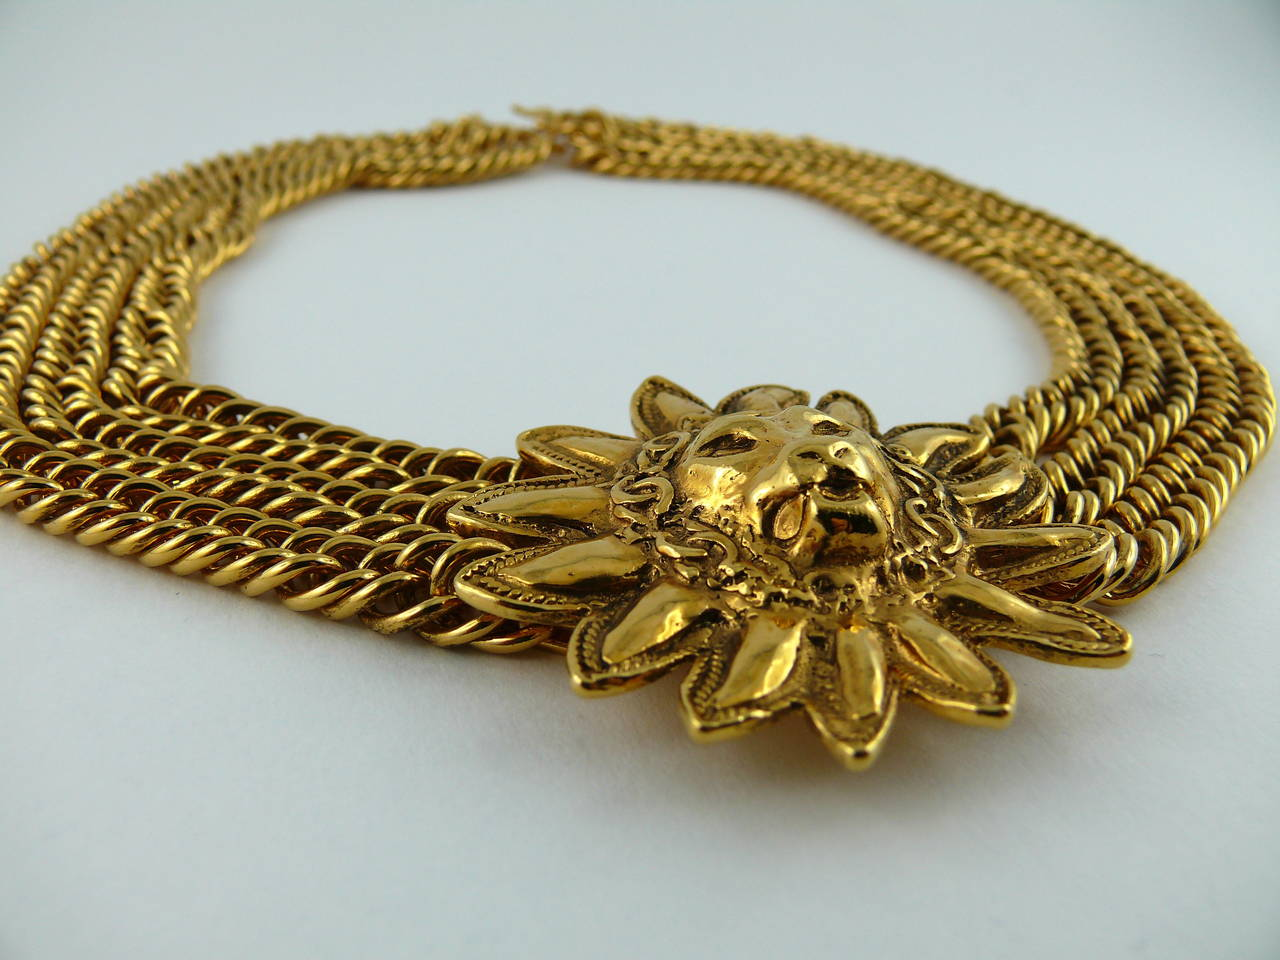 Chanel Vintage Gold Plated Leo Choker Necklace 4